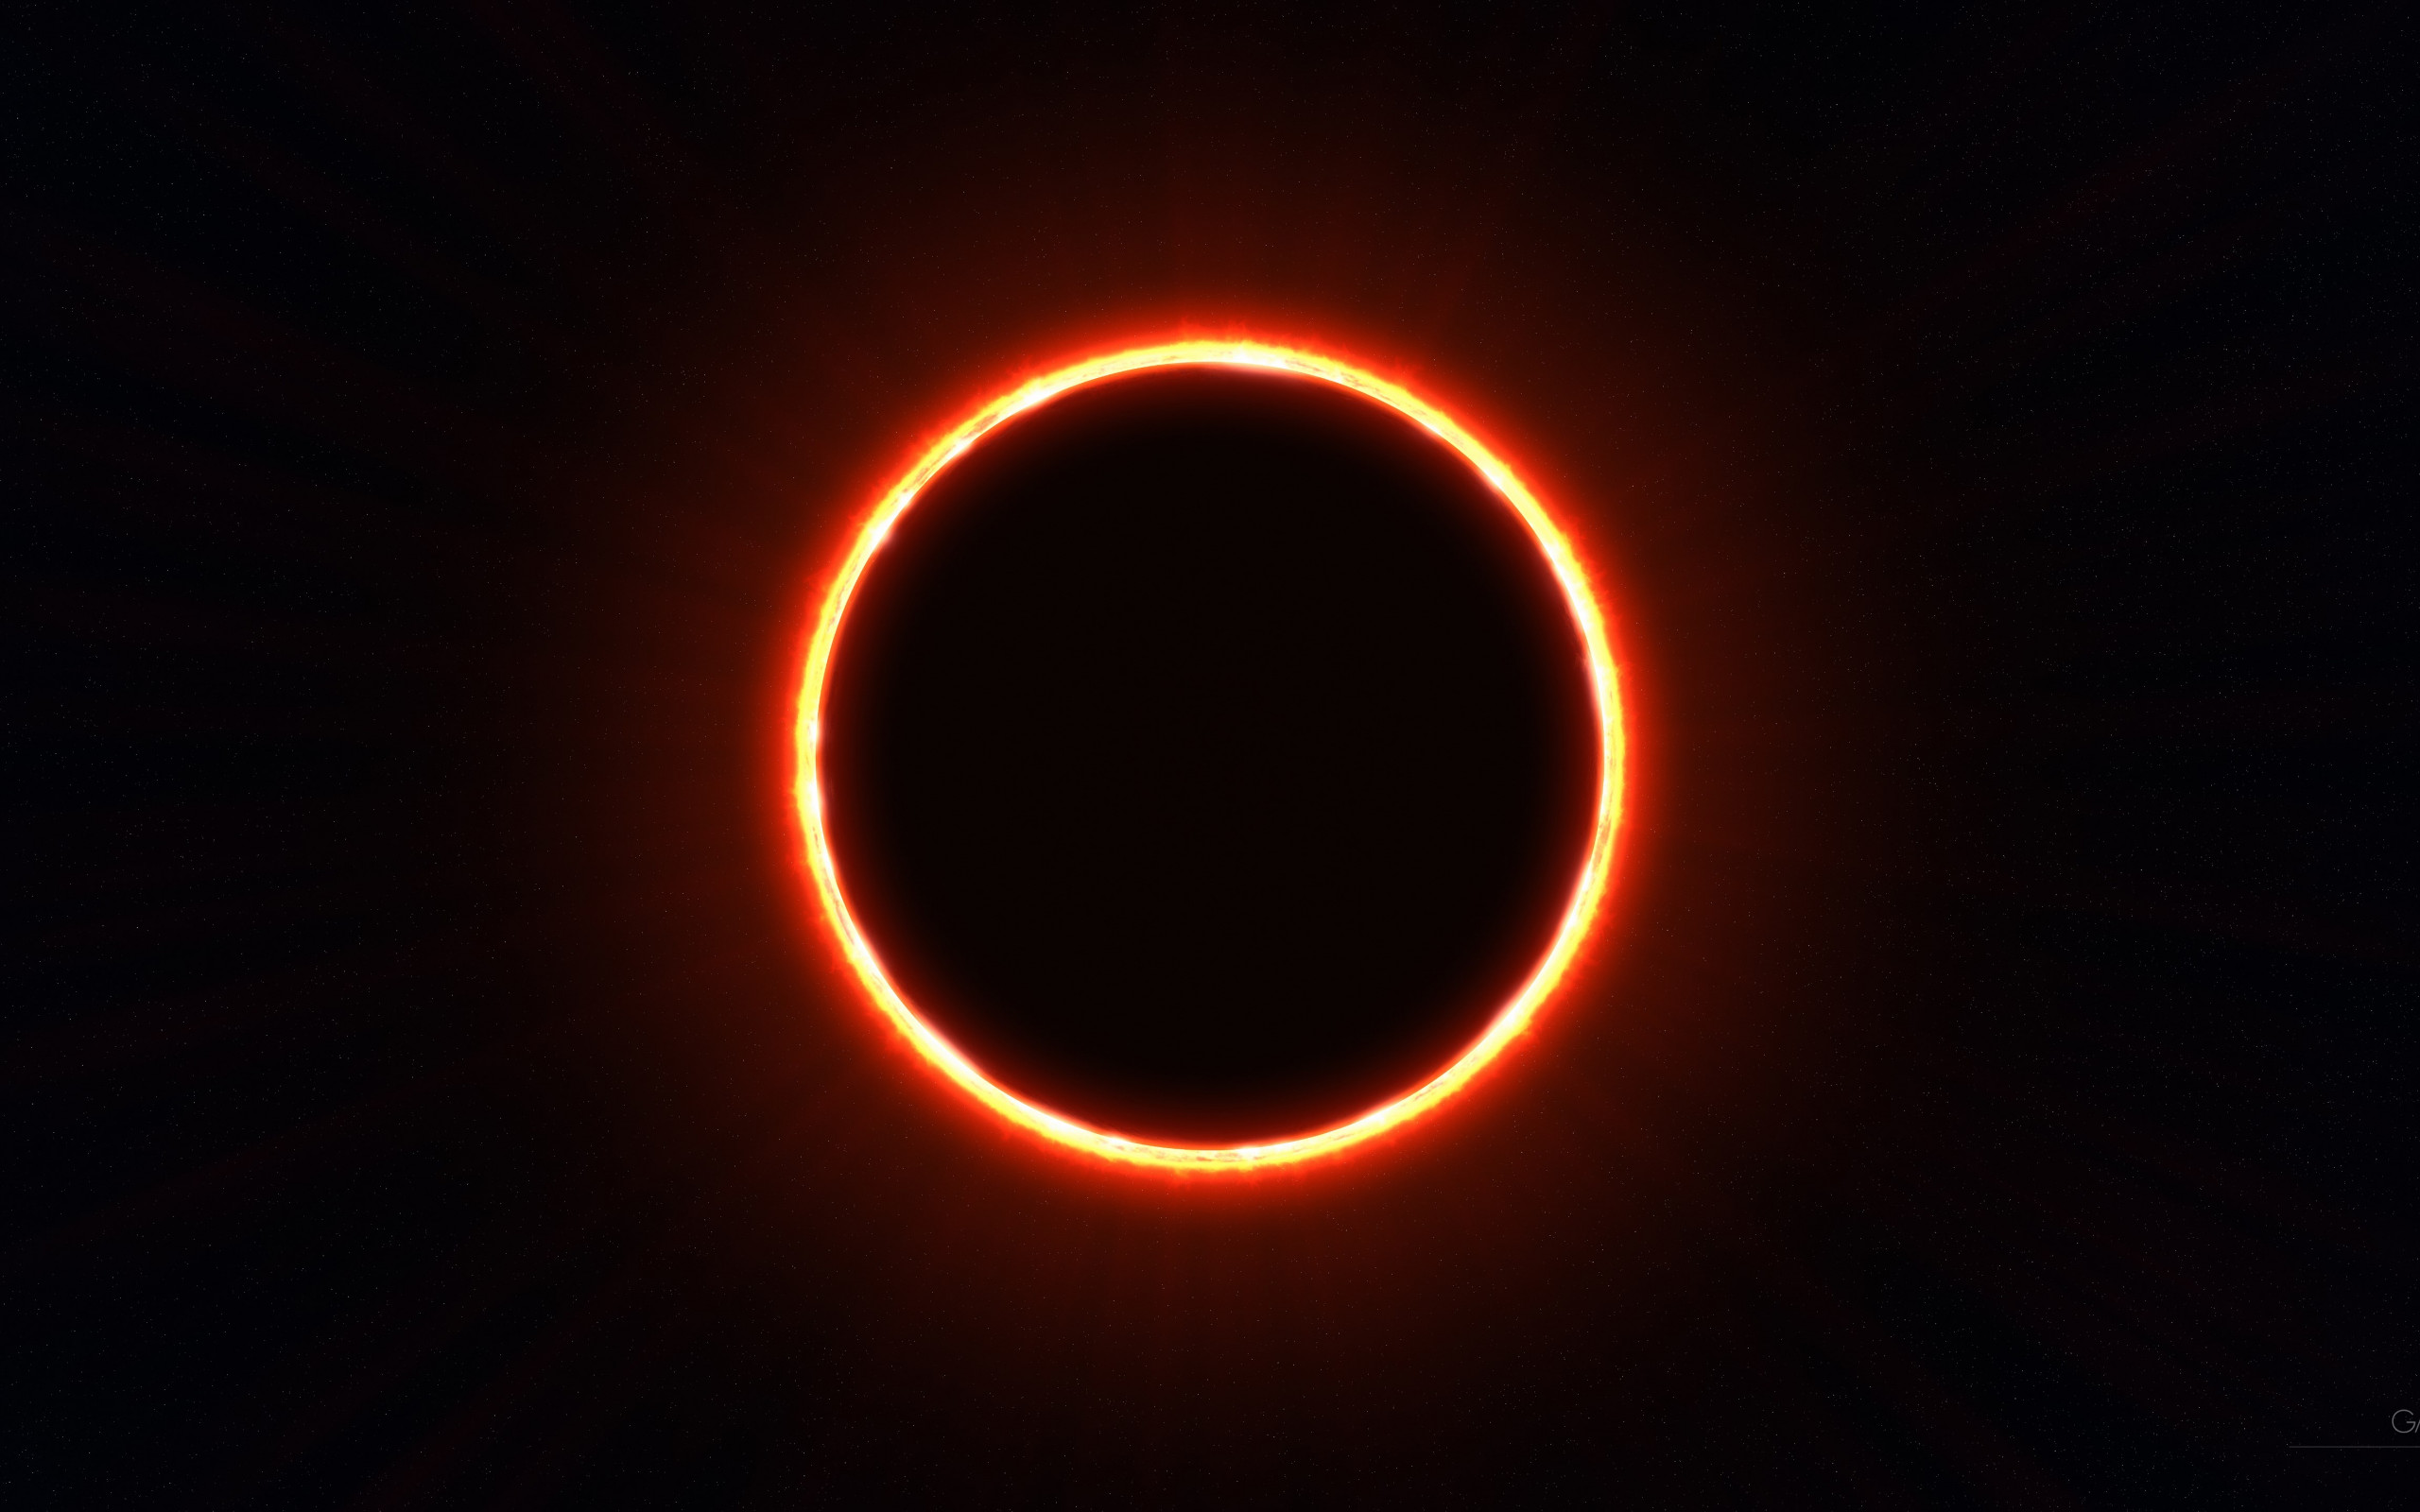 Eclipse wallpaper 2560x1600